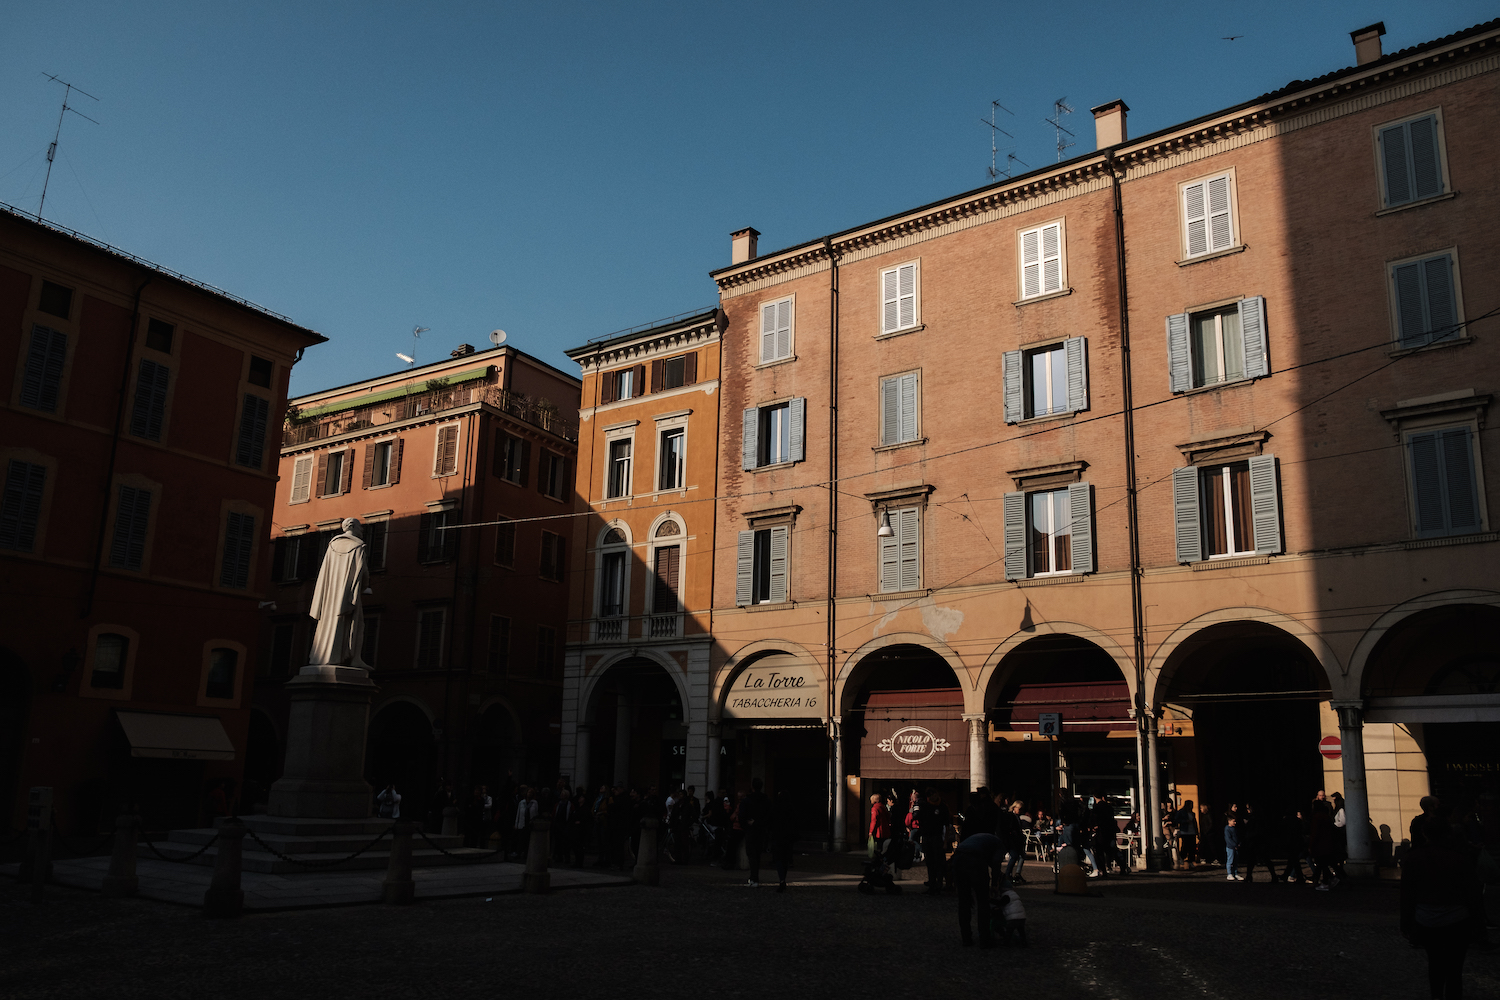 Hotels and apartments in Modena - Travel and Street Photography by Ben Holbrook from DriftwoodJournals.com-5806